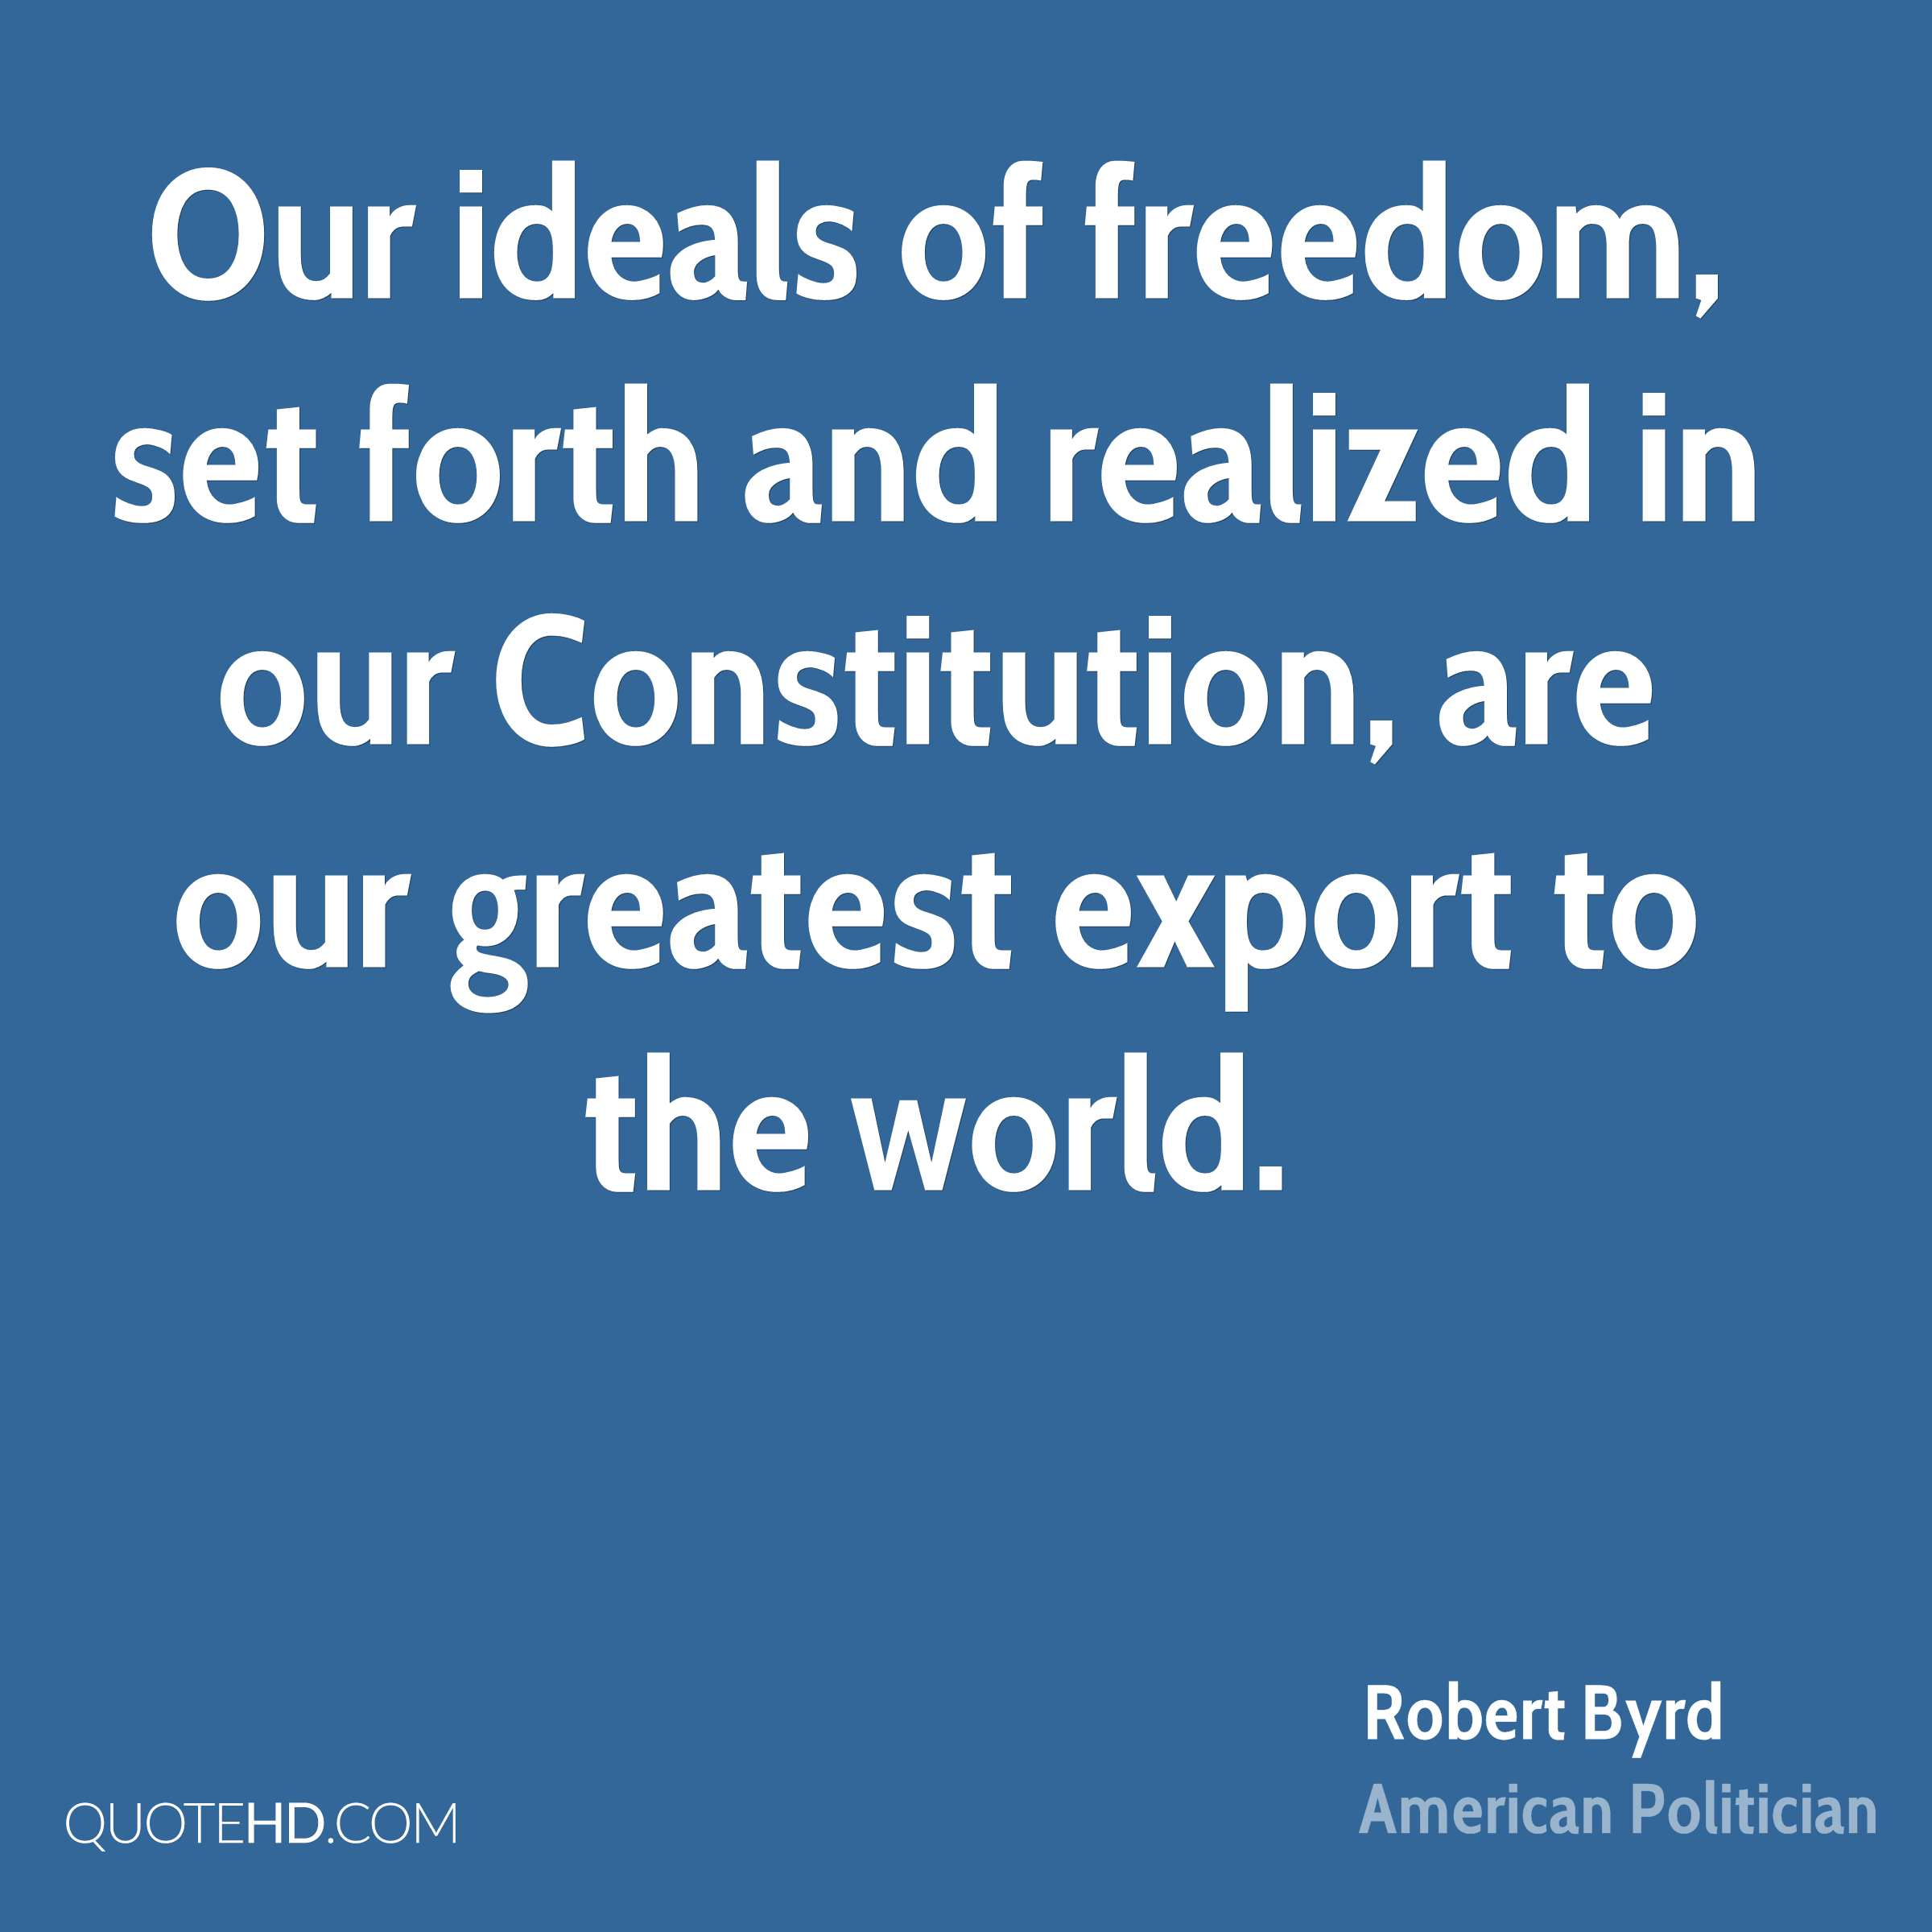 Our ideals of freedom, set forth and realized in our Constitution, are our greatest export to the world.